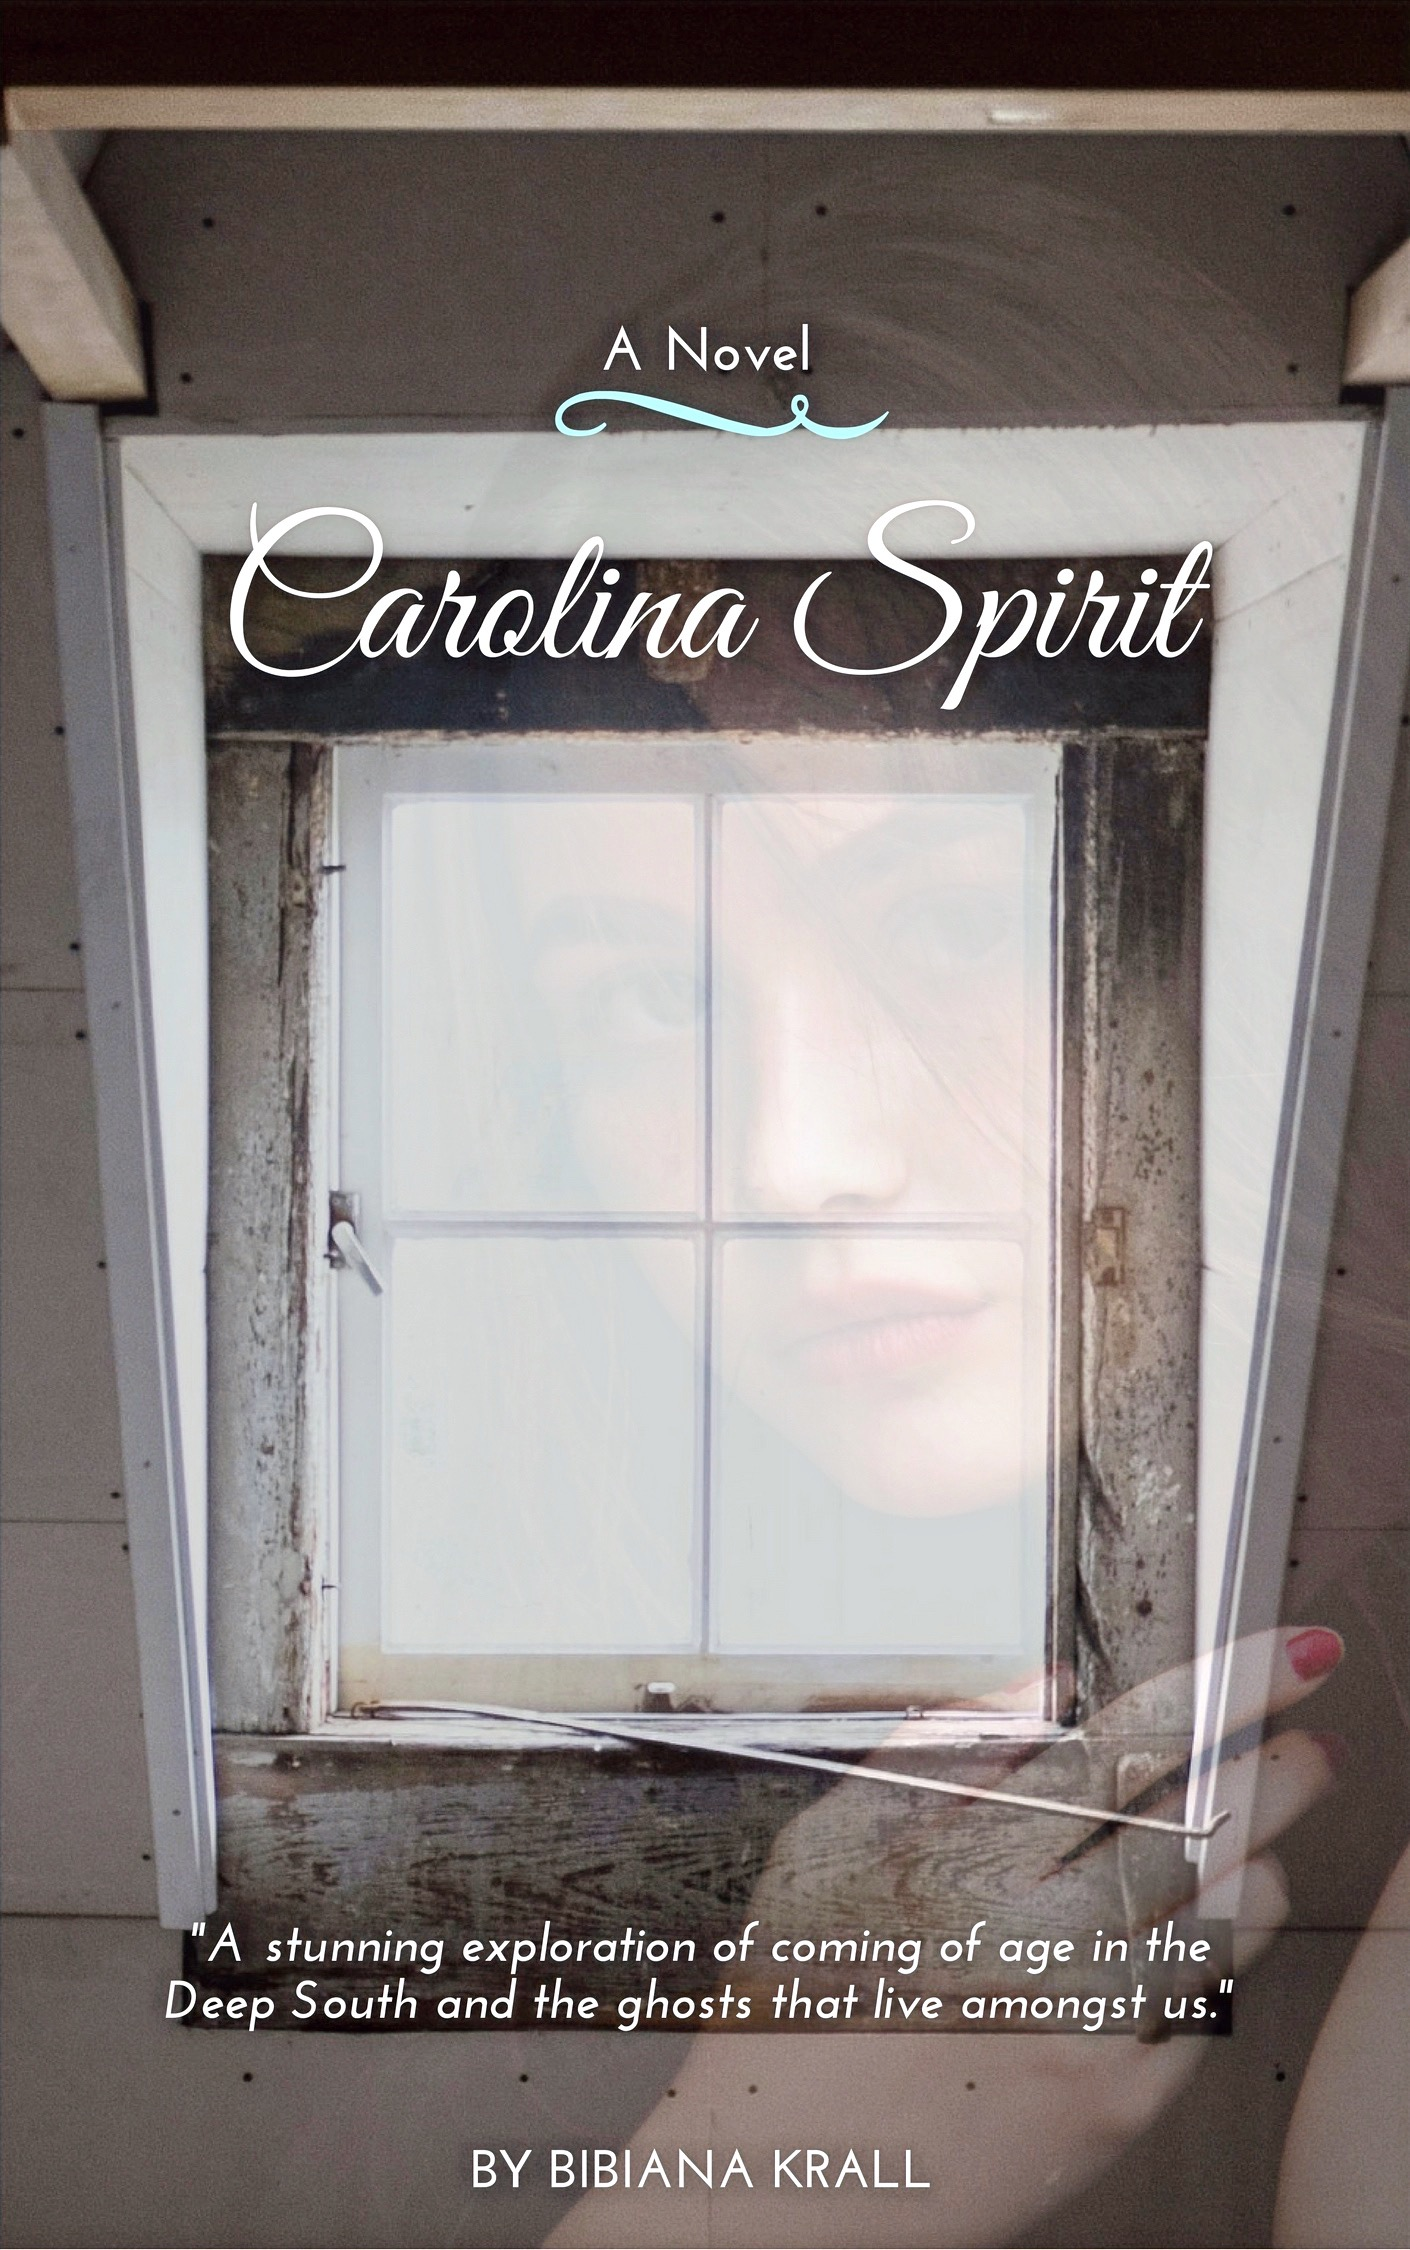 Carolina Spirit by Bibiana Krall